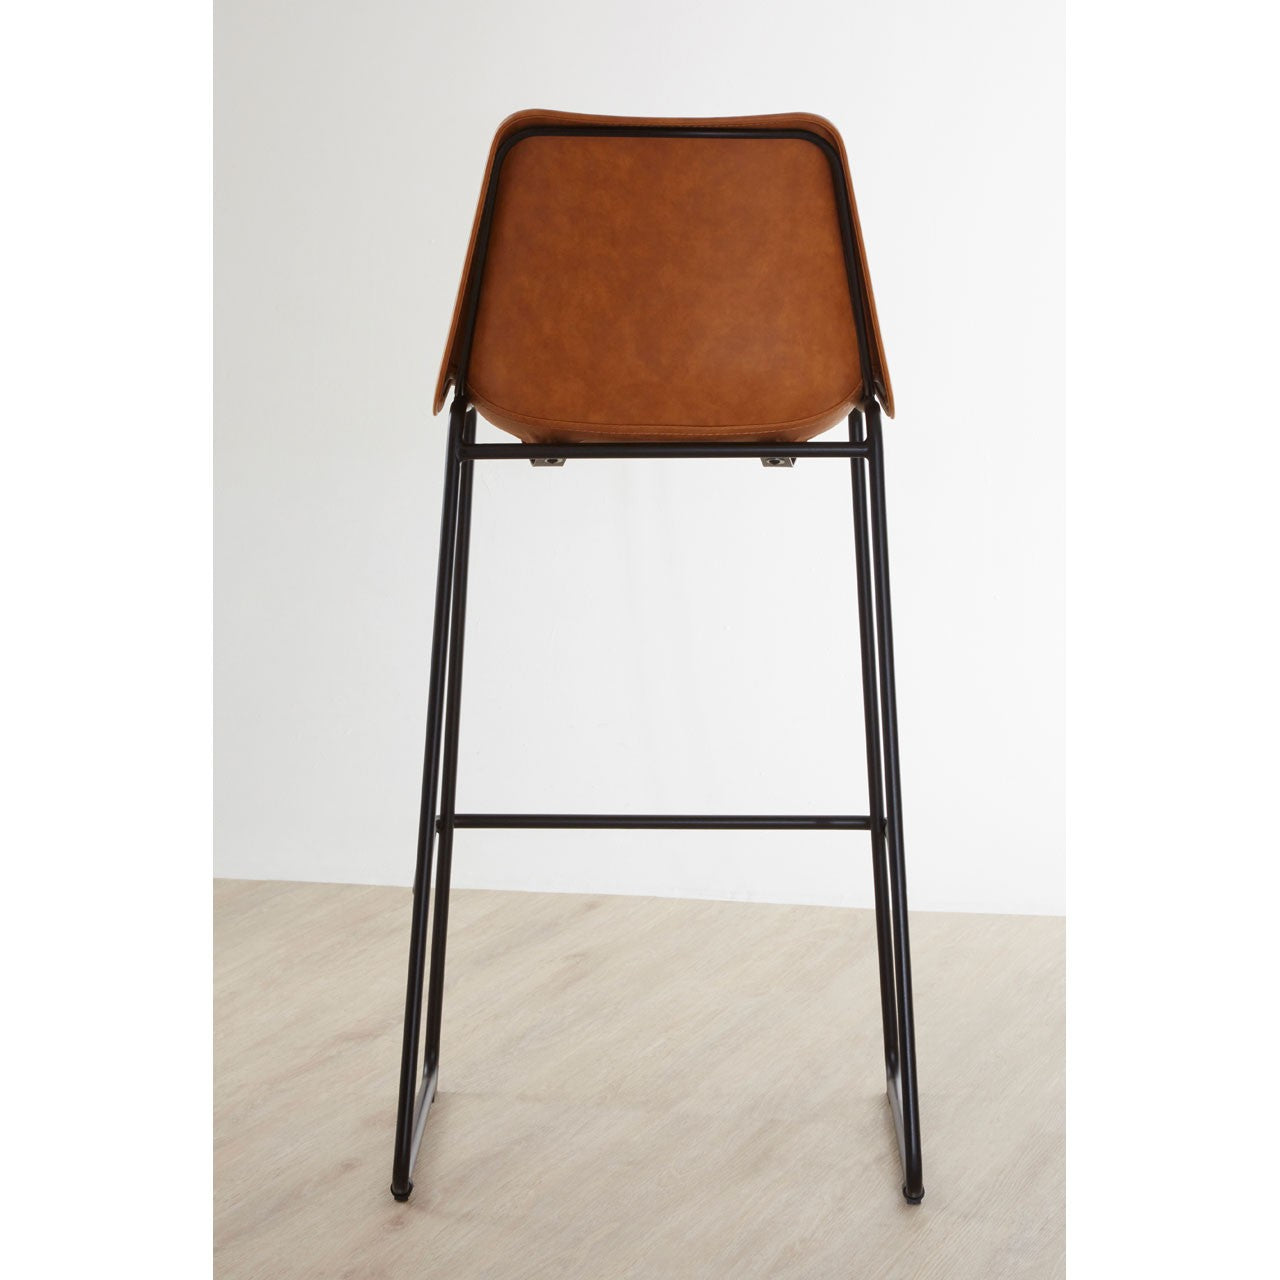 Dalston Bar Stool (Camel) - Back